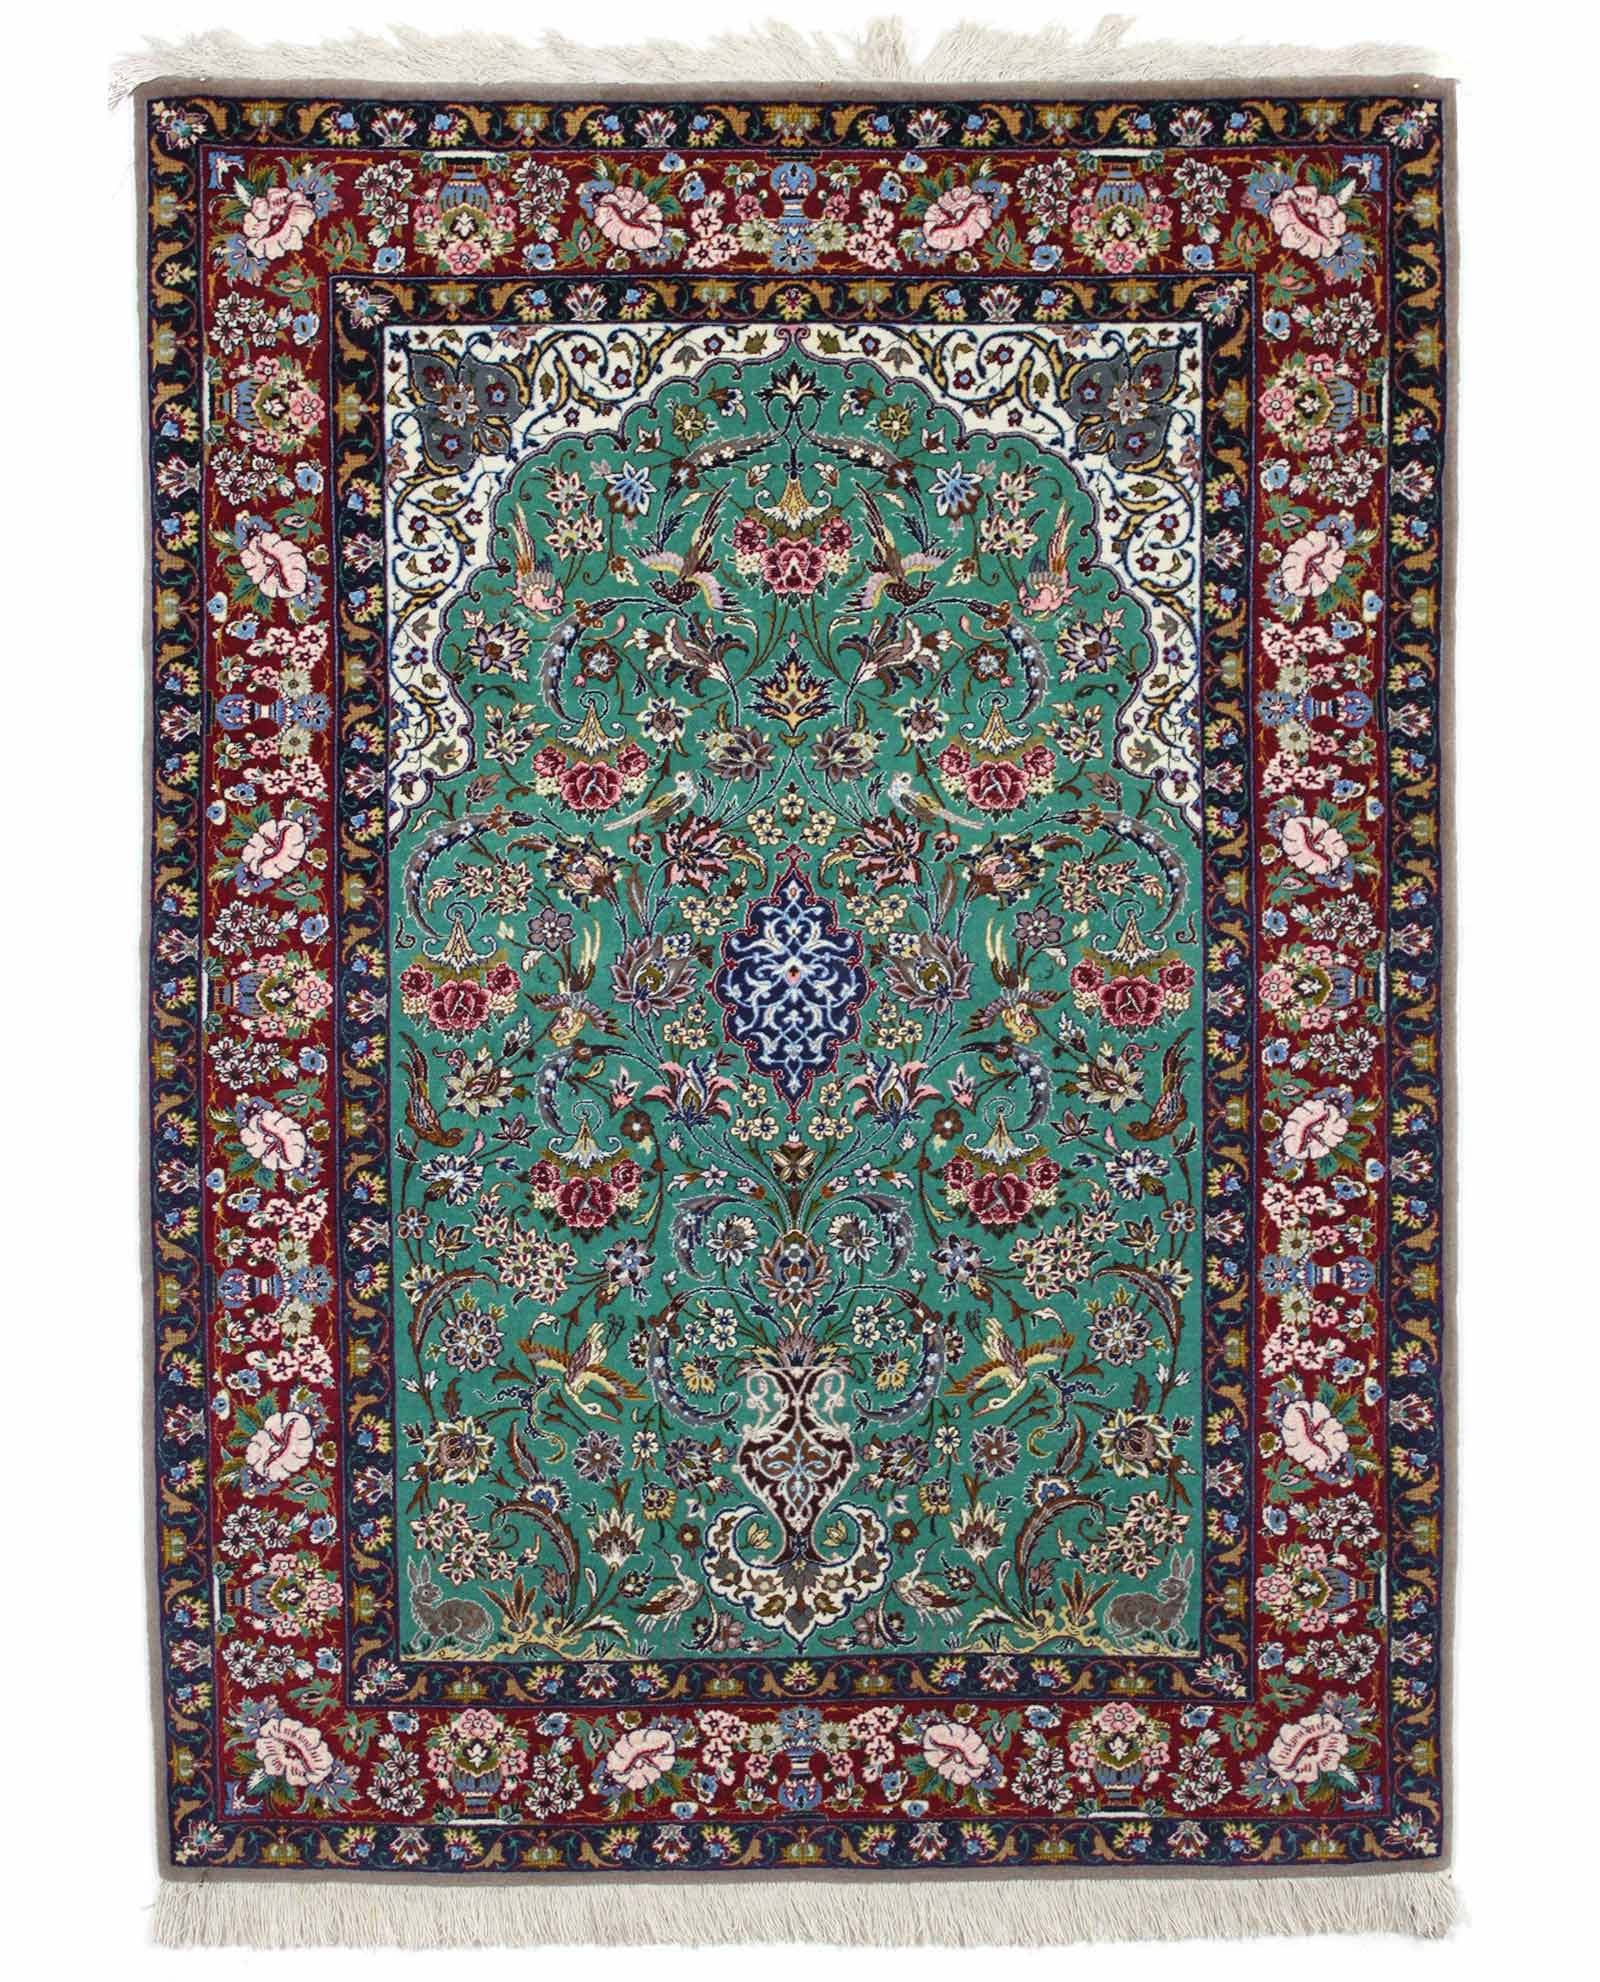 tapis persan isfahan 3214 iranian carpet. Black Bedroom Furniture Sets. Home Design Ideas